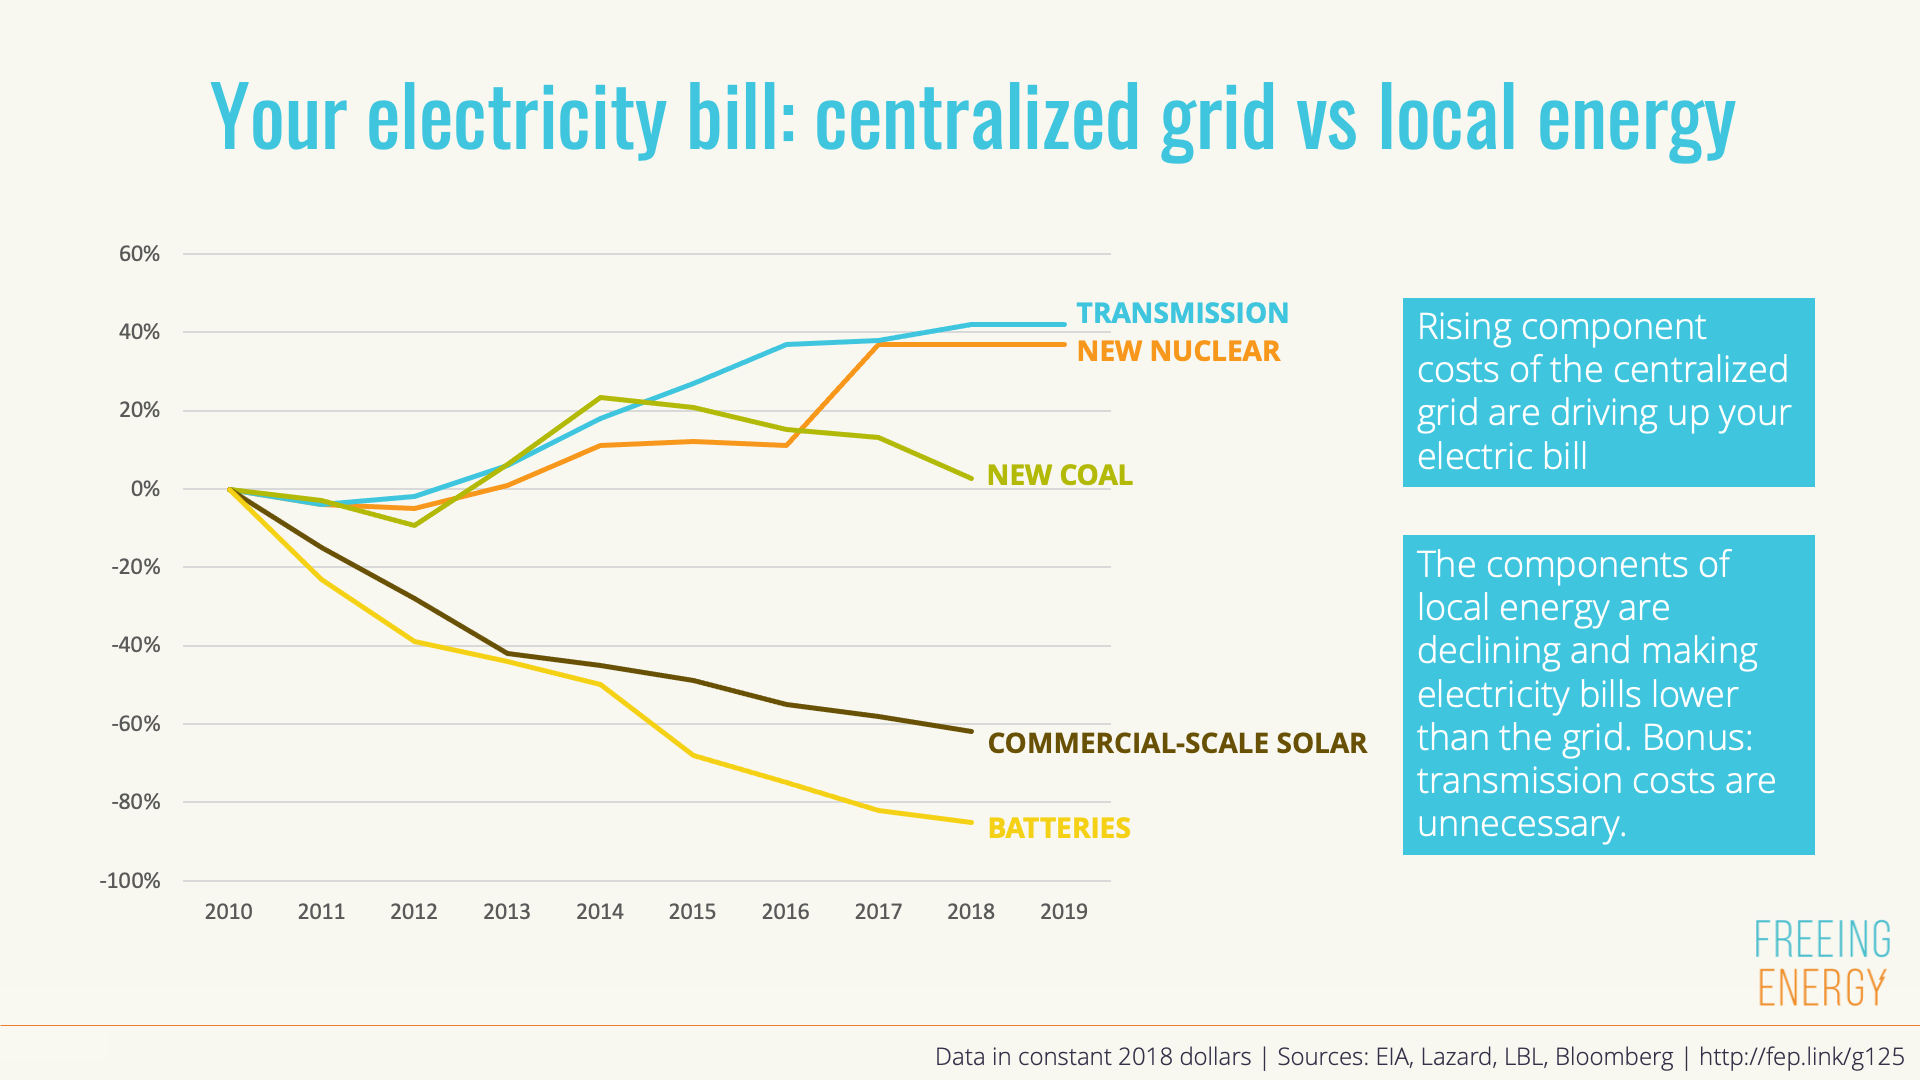 graph showing how commercial solar and batteries cost less than the grid, and the gap is widening